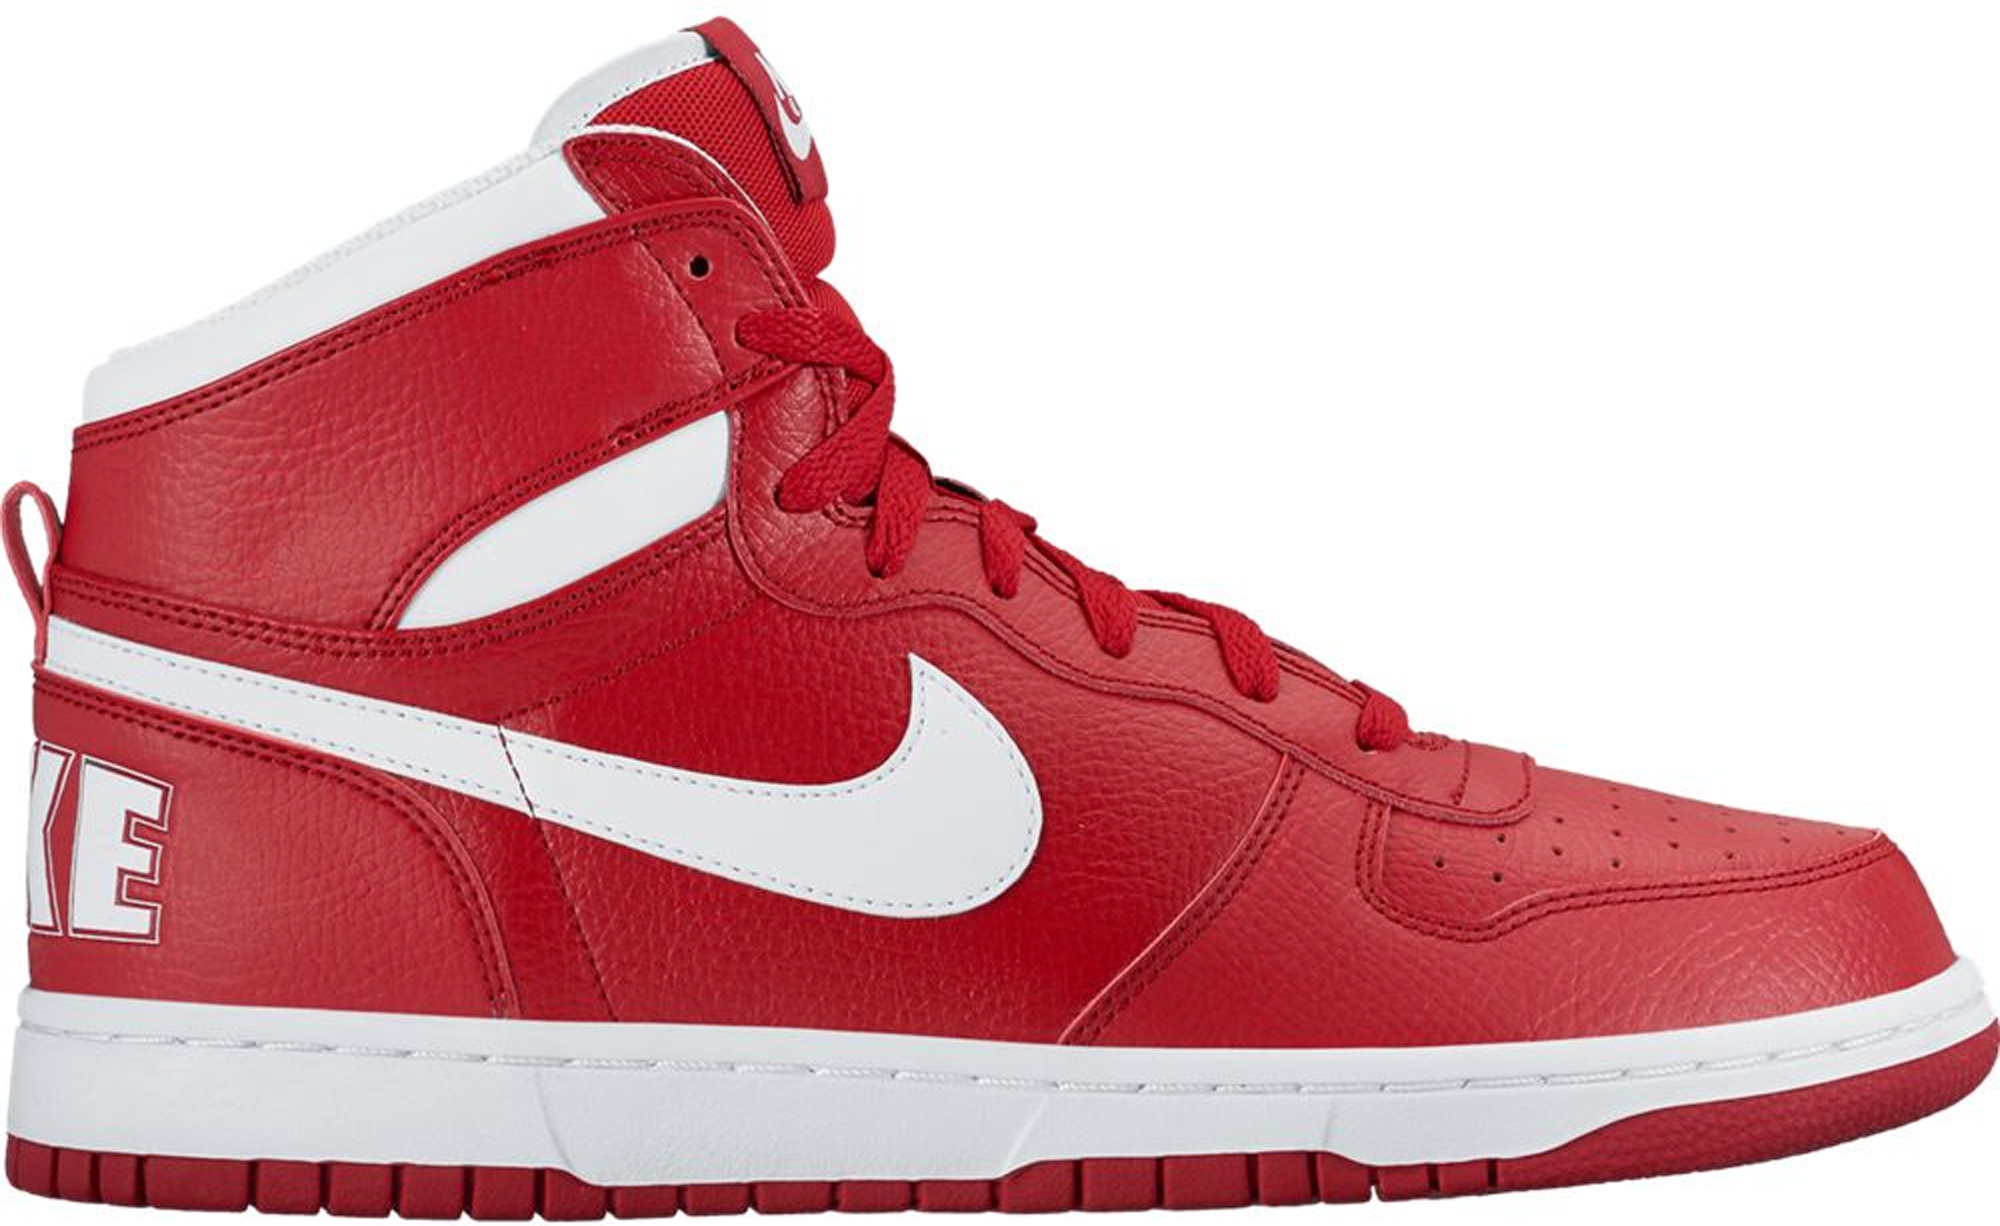 Nike Big Nike High Gym Red White